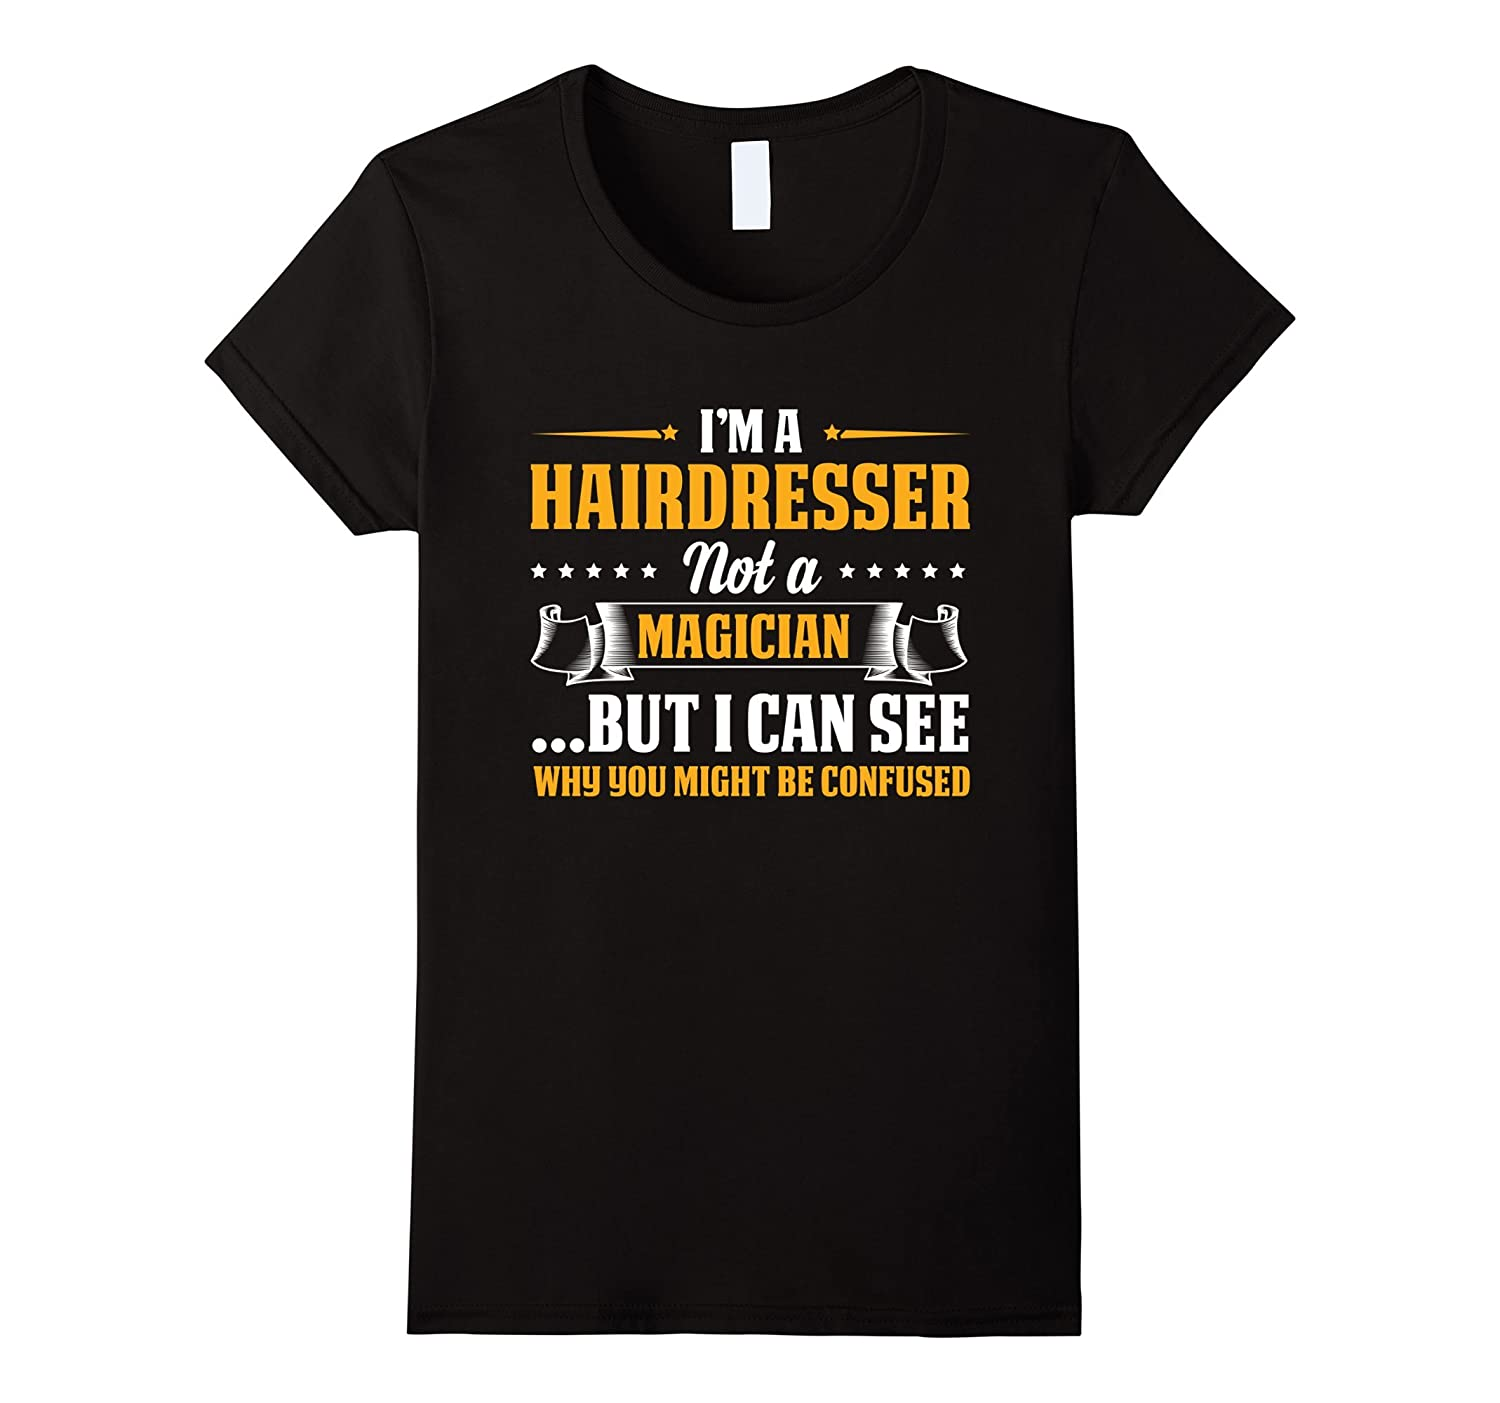 Hairdresser Magician Confused T Shirt Small-Samdetee